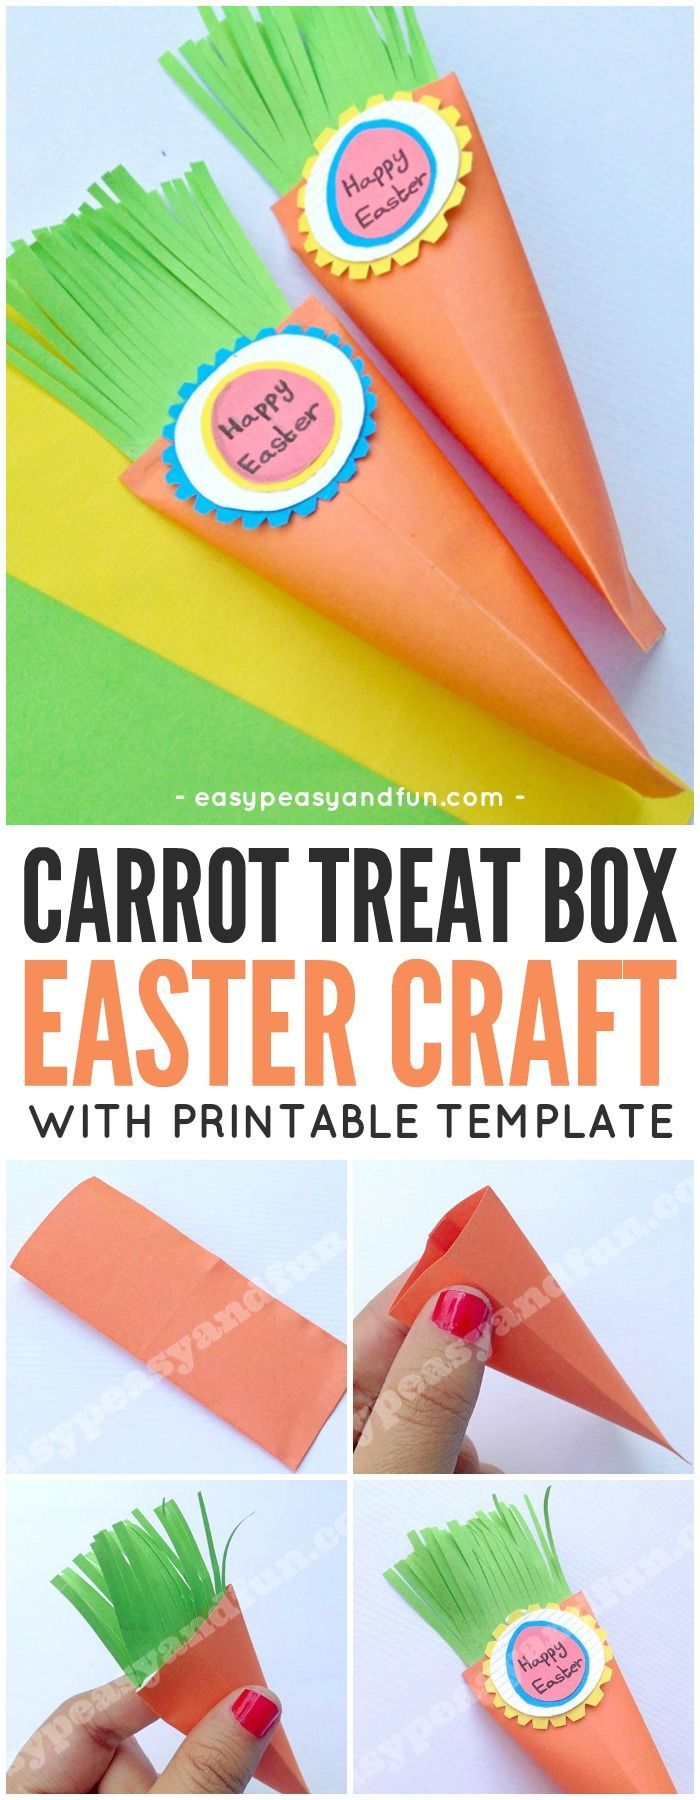 Easter Carrot Treat Box Craft Ideas For Kids Pinterest Crafts